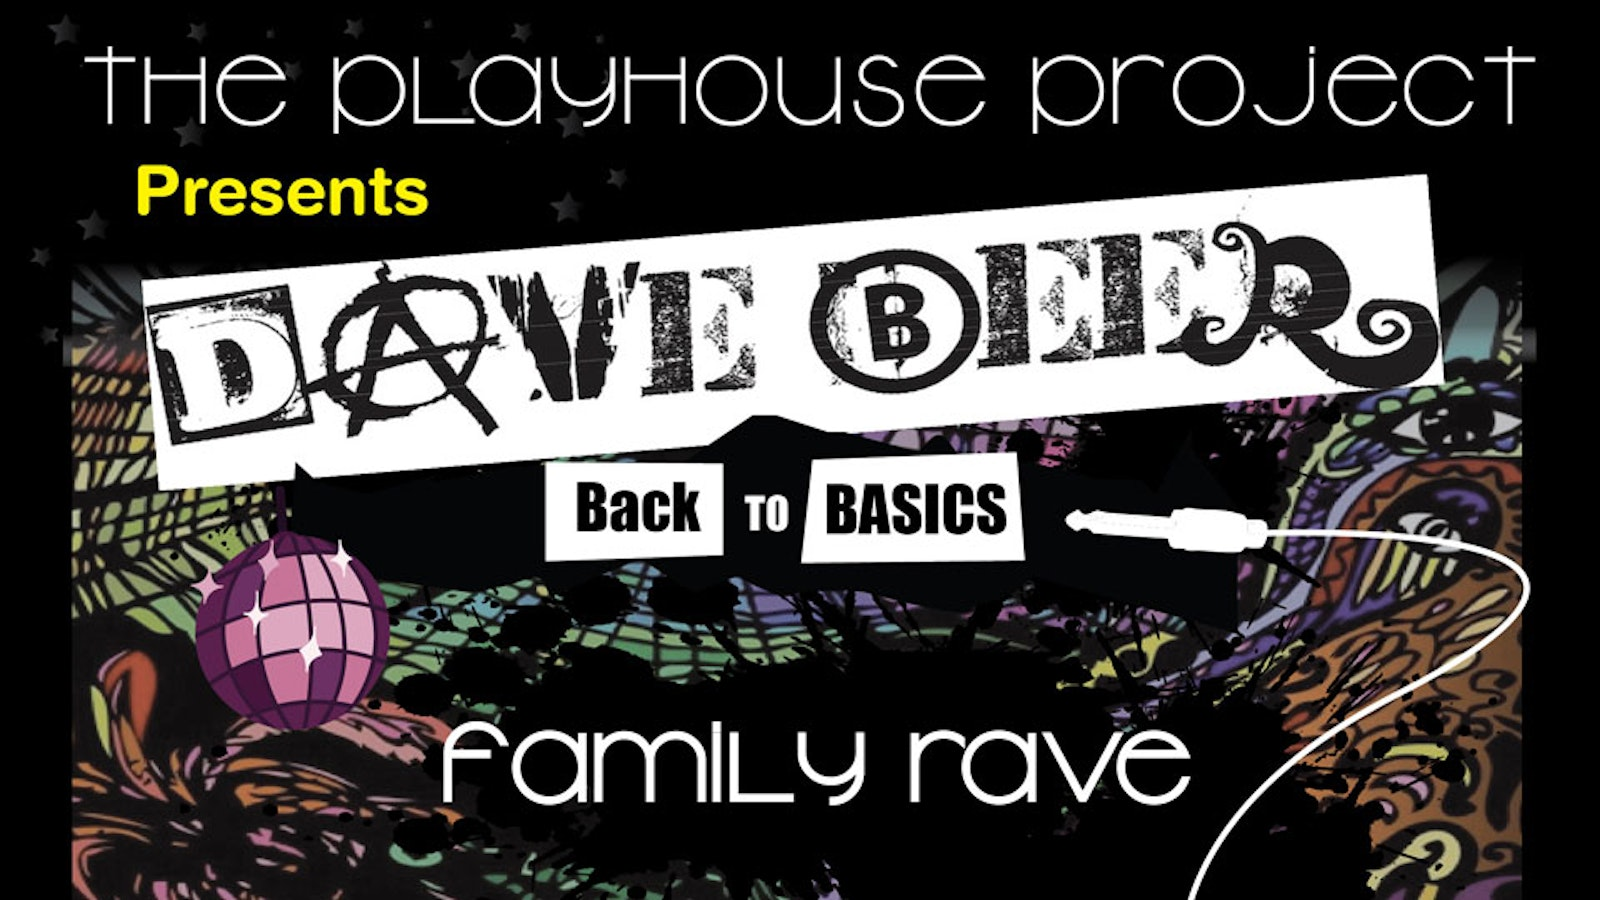 Playhouse Project presents Family Rave